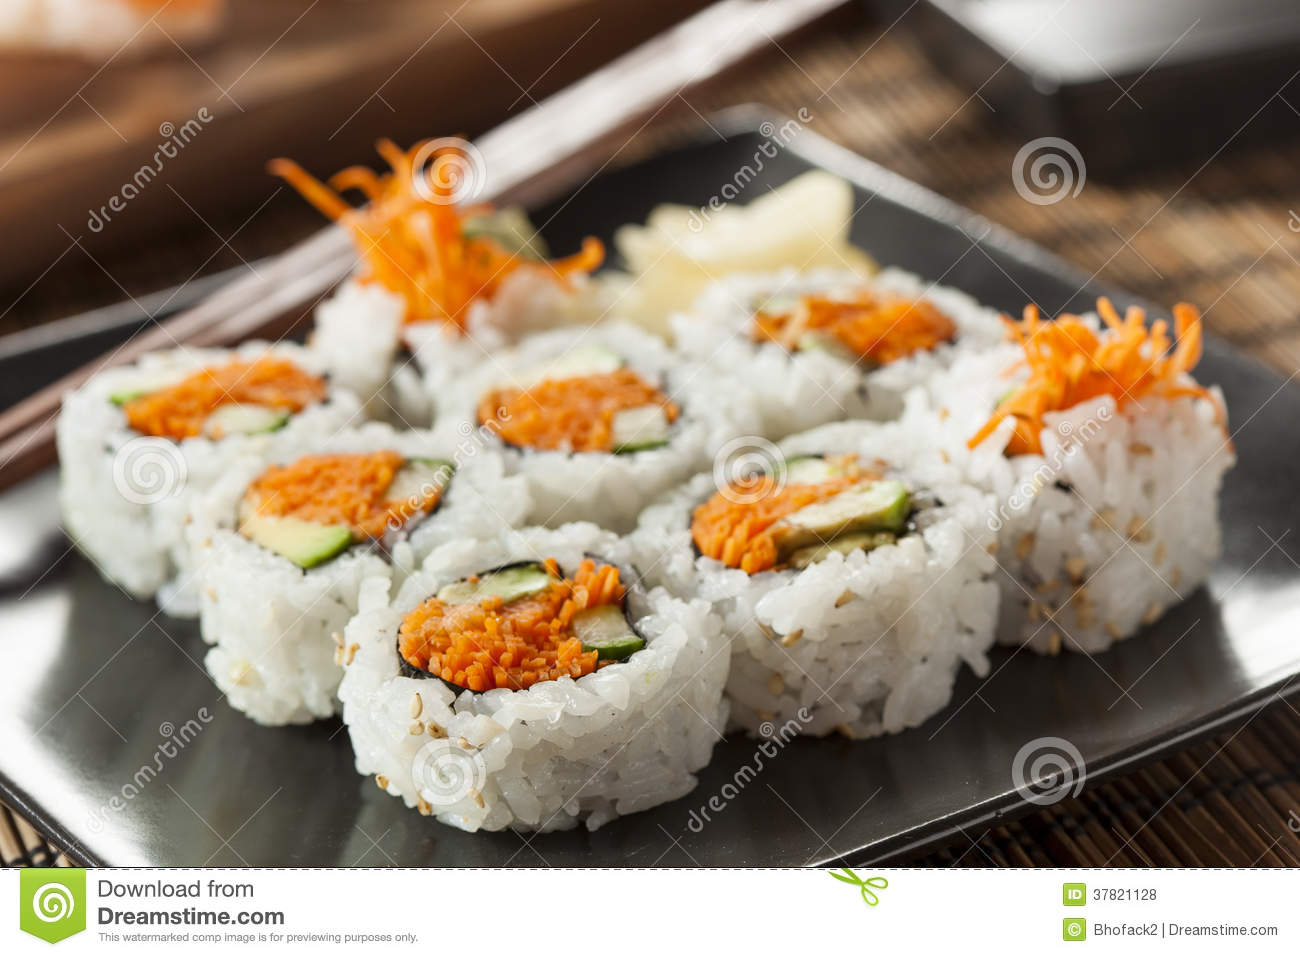 Healthy Japanese Vegetable Maki Sushi Roll Royalty Free Stock Photos ...